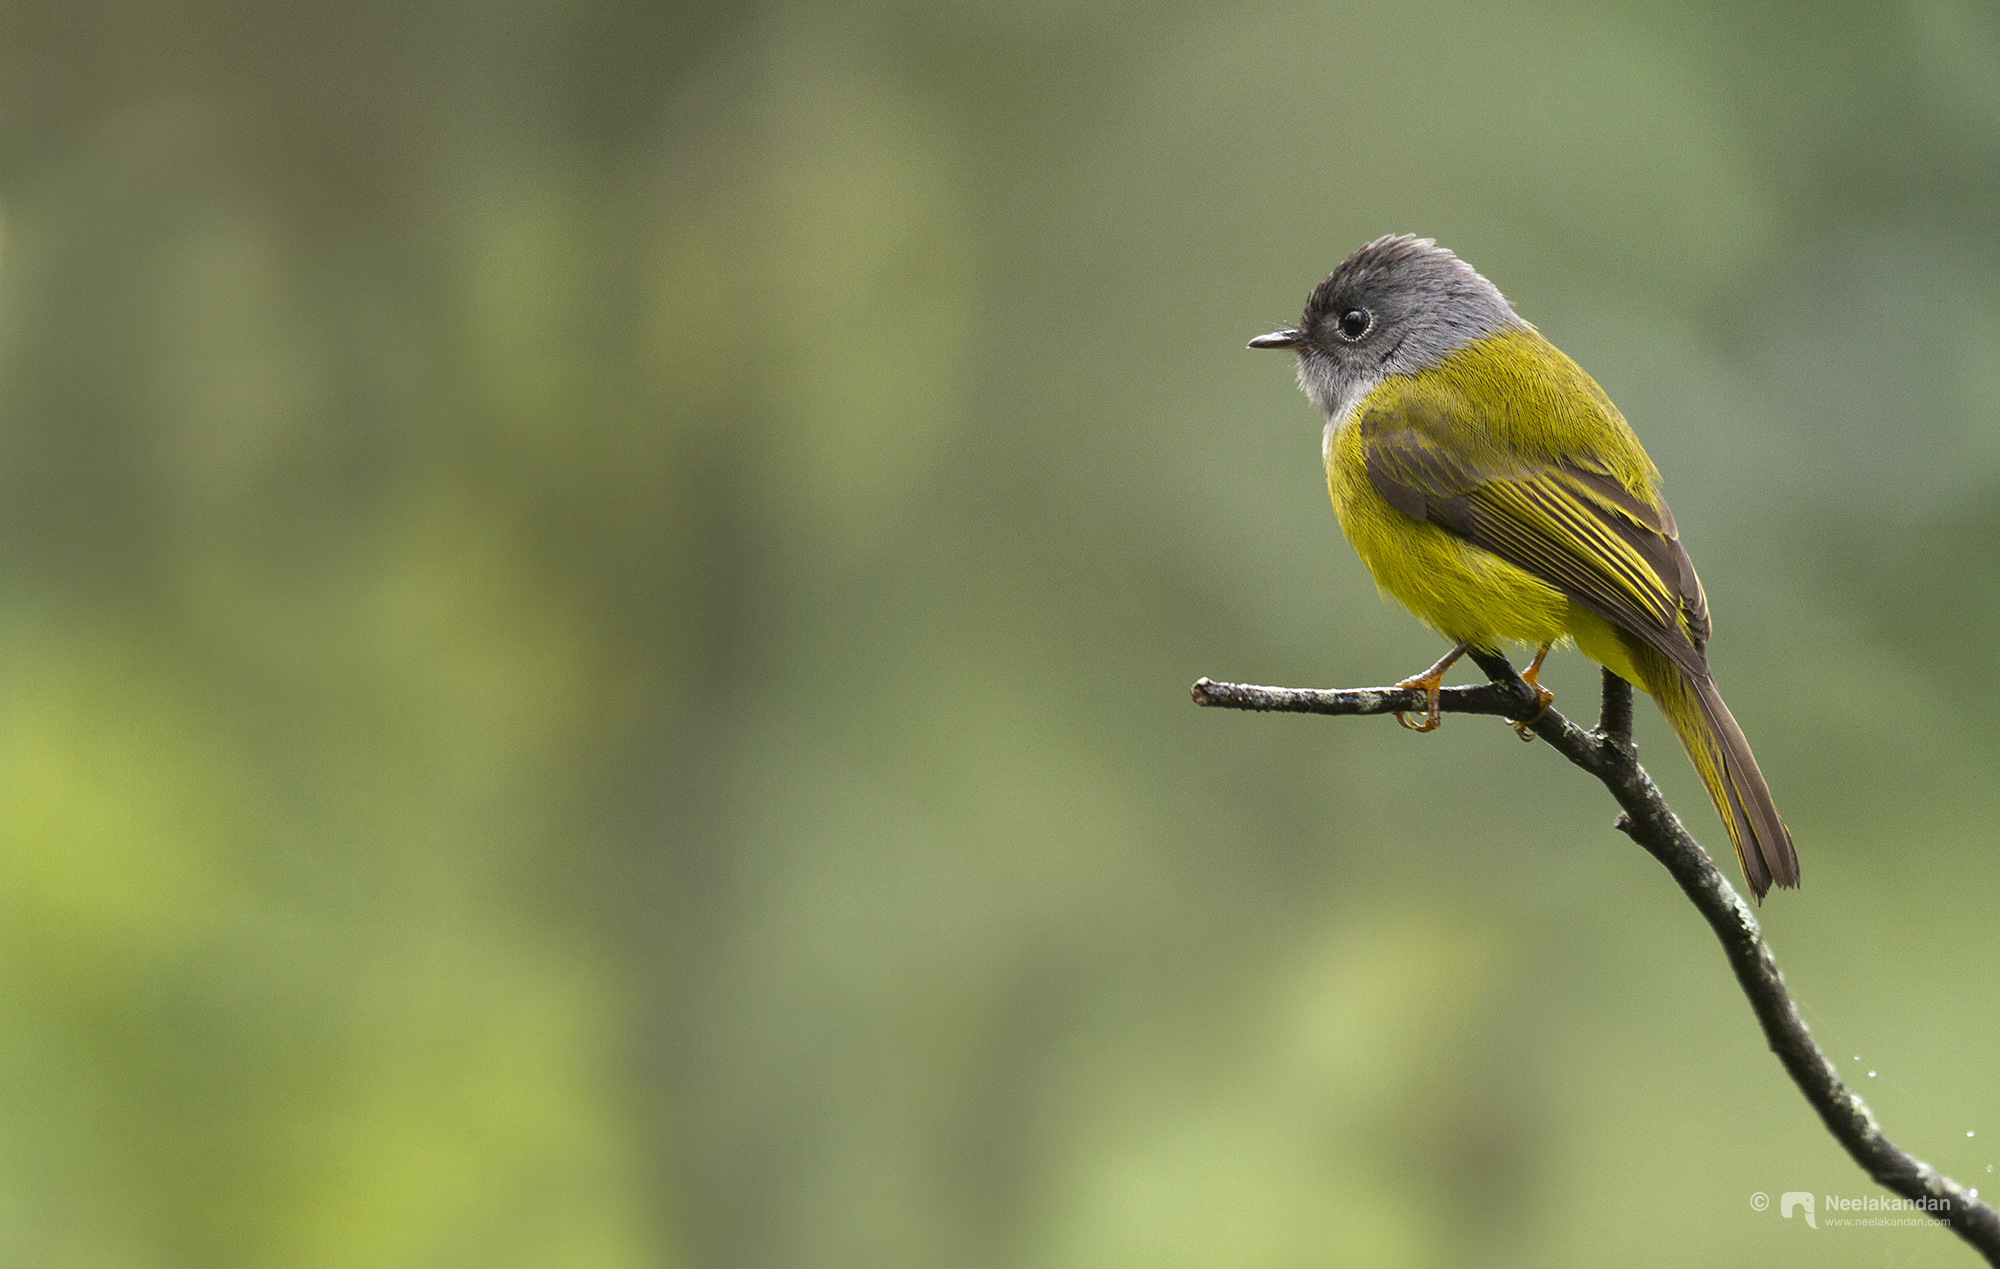 Grey headed canary flycatcher from PSNP, Munnar.